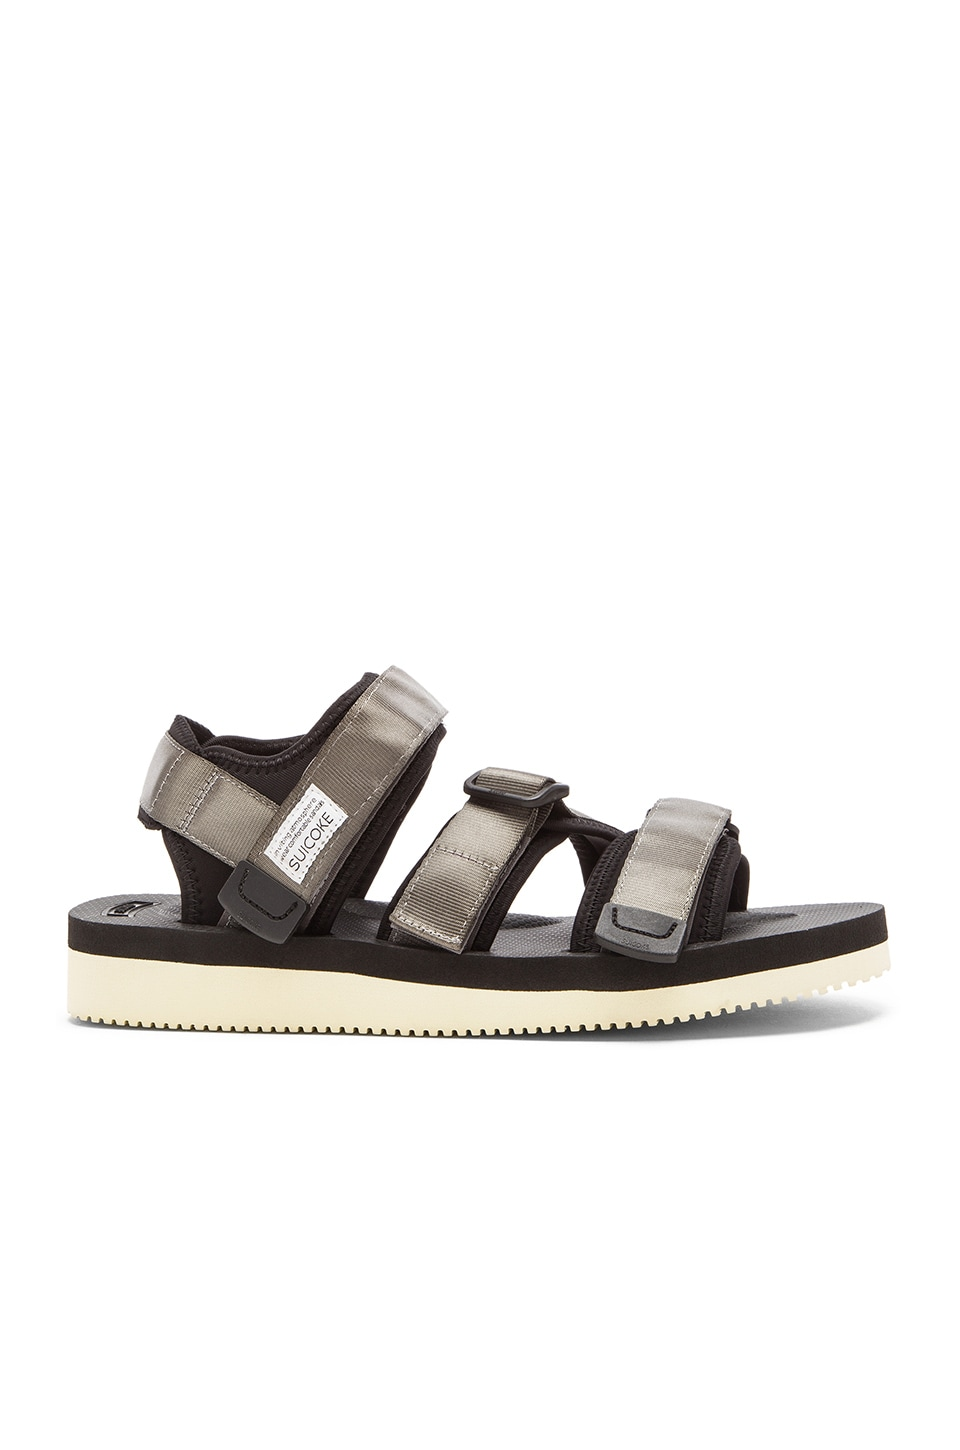 29f0a7a7cac6 Suicoke KISEE-V Sandal in Grey